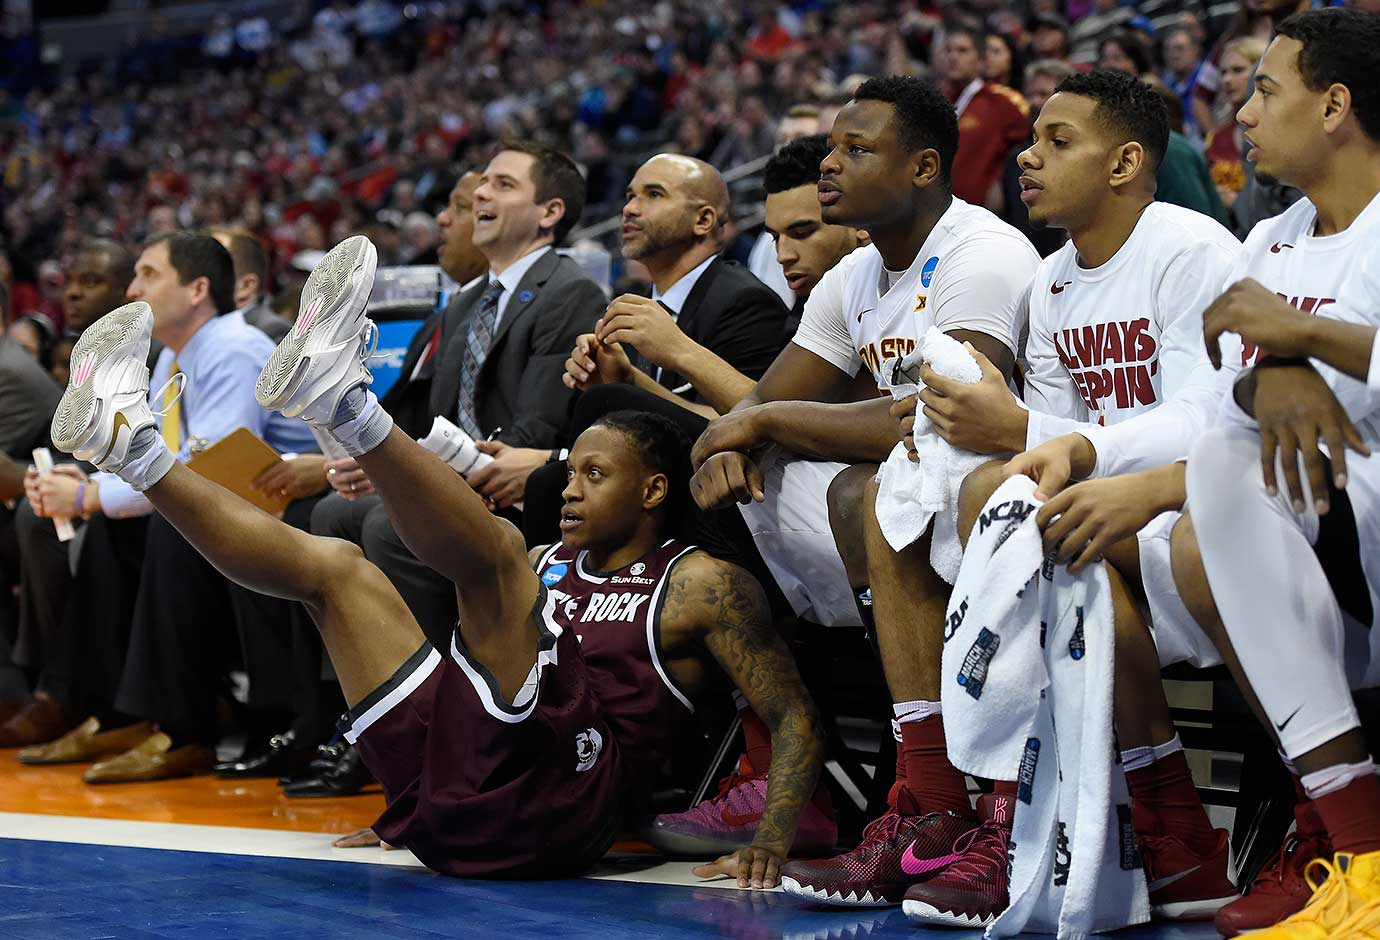 Marcus Johnson Jr. and Arkansas Little Rock fell out of championship contention with a 78-61 loss to Iowa State.